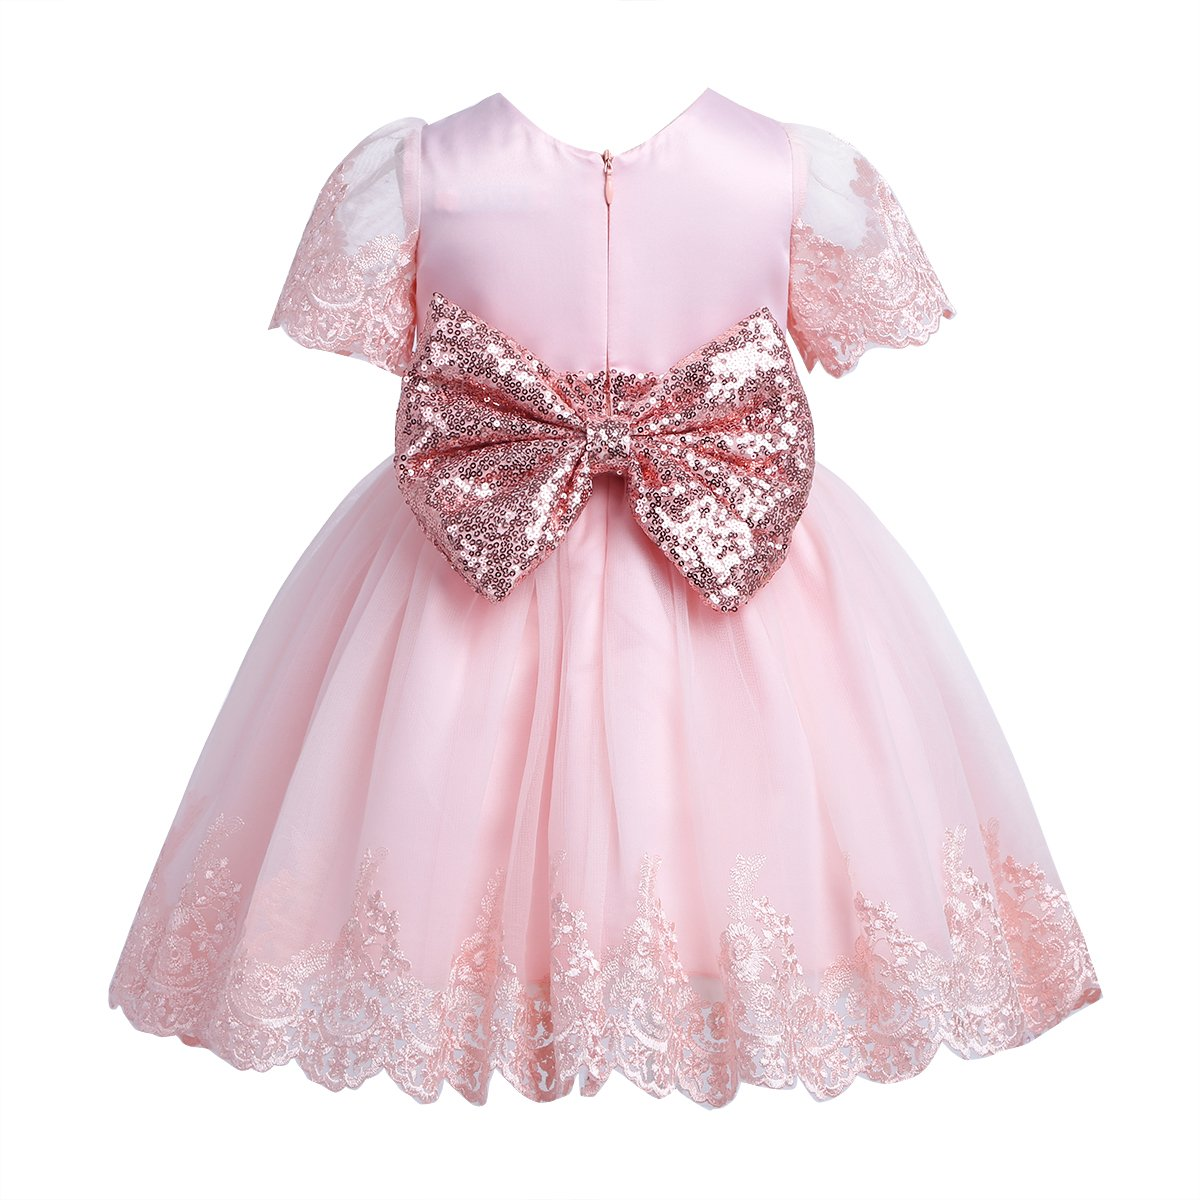 TiaoBug Baby Girls Sequined Bowknot Flower Birthday Party Dress Infant Princess Pageant Wedding Baptism Easter Gown Pink 12-18 Months